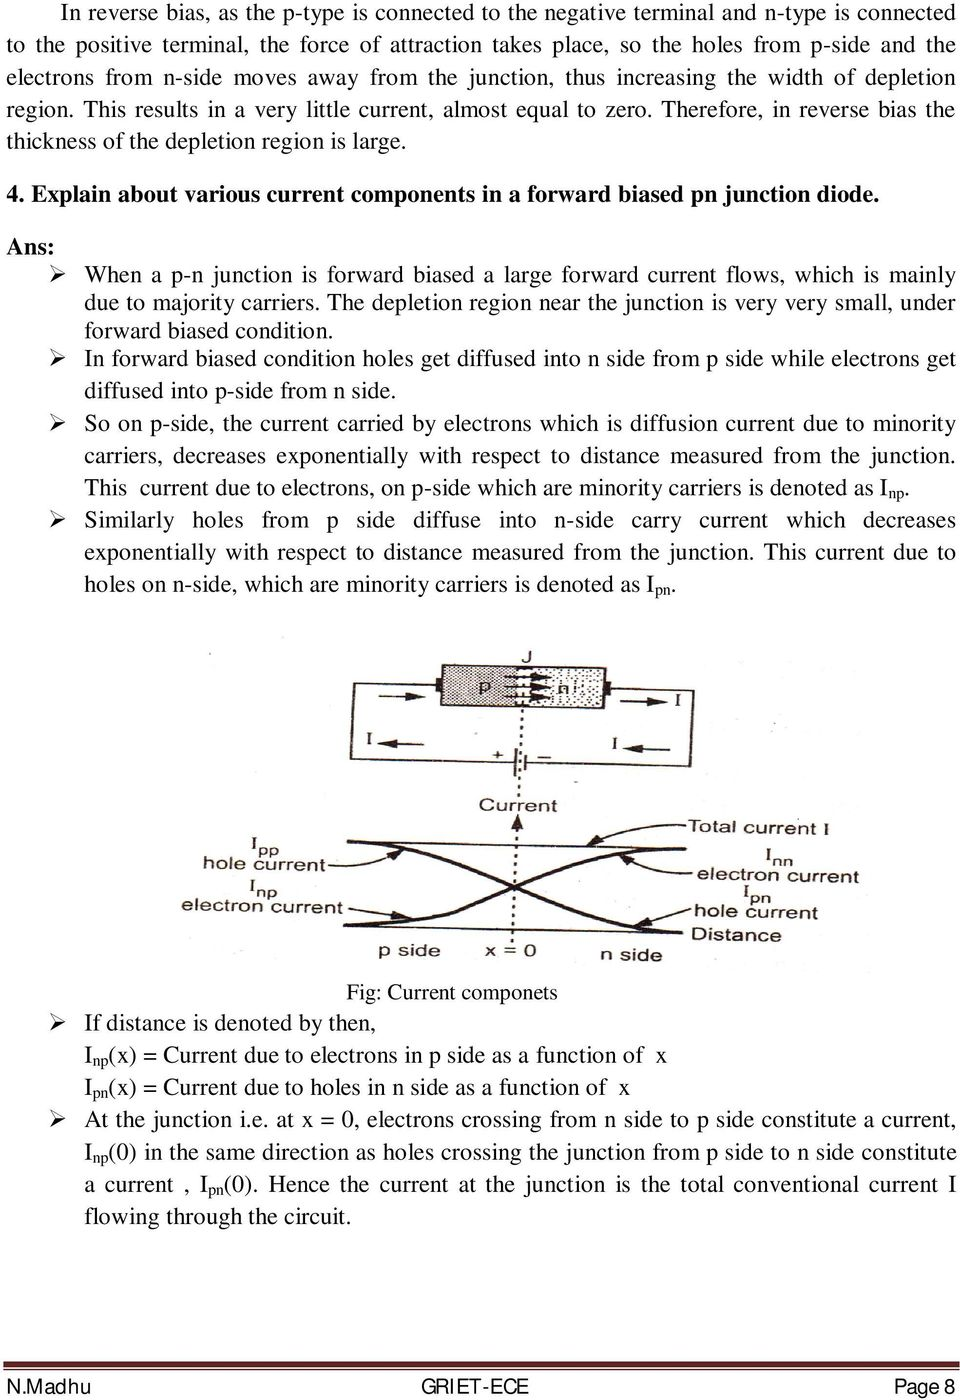 Basic Electrical And Electronics Engineering Pdf Pn Junction Diode Its Characteristics Therefore In Reverse Bias The Thickness Of Depletion Region Is Large 4